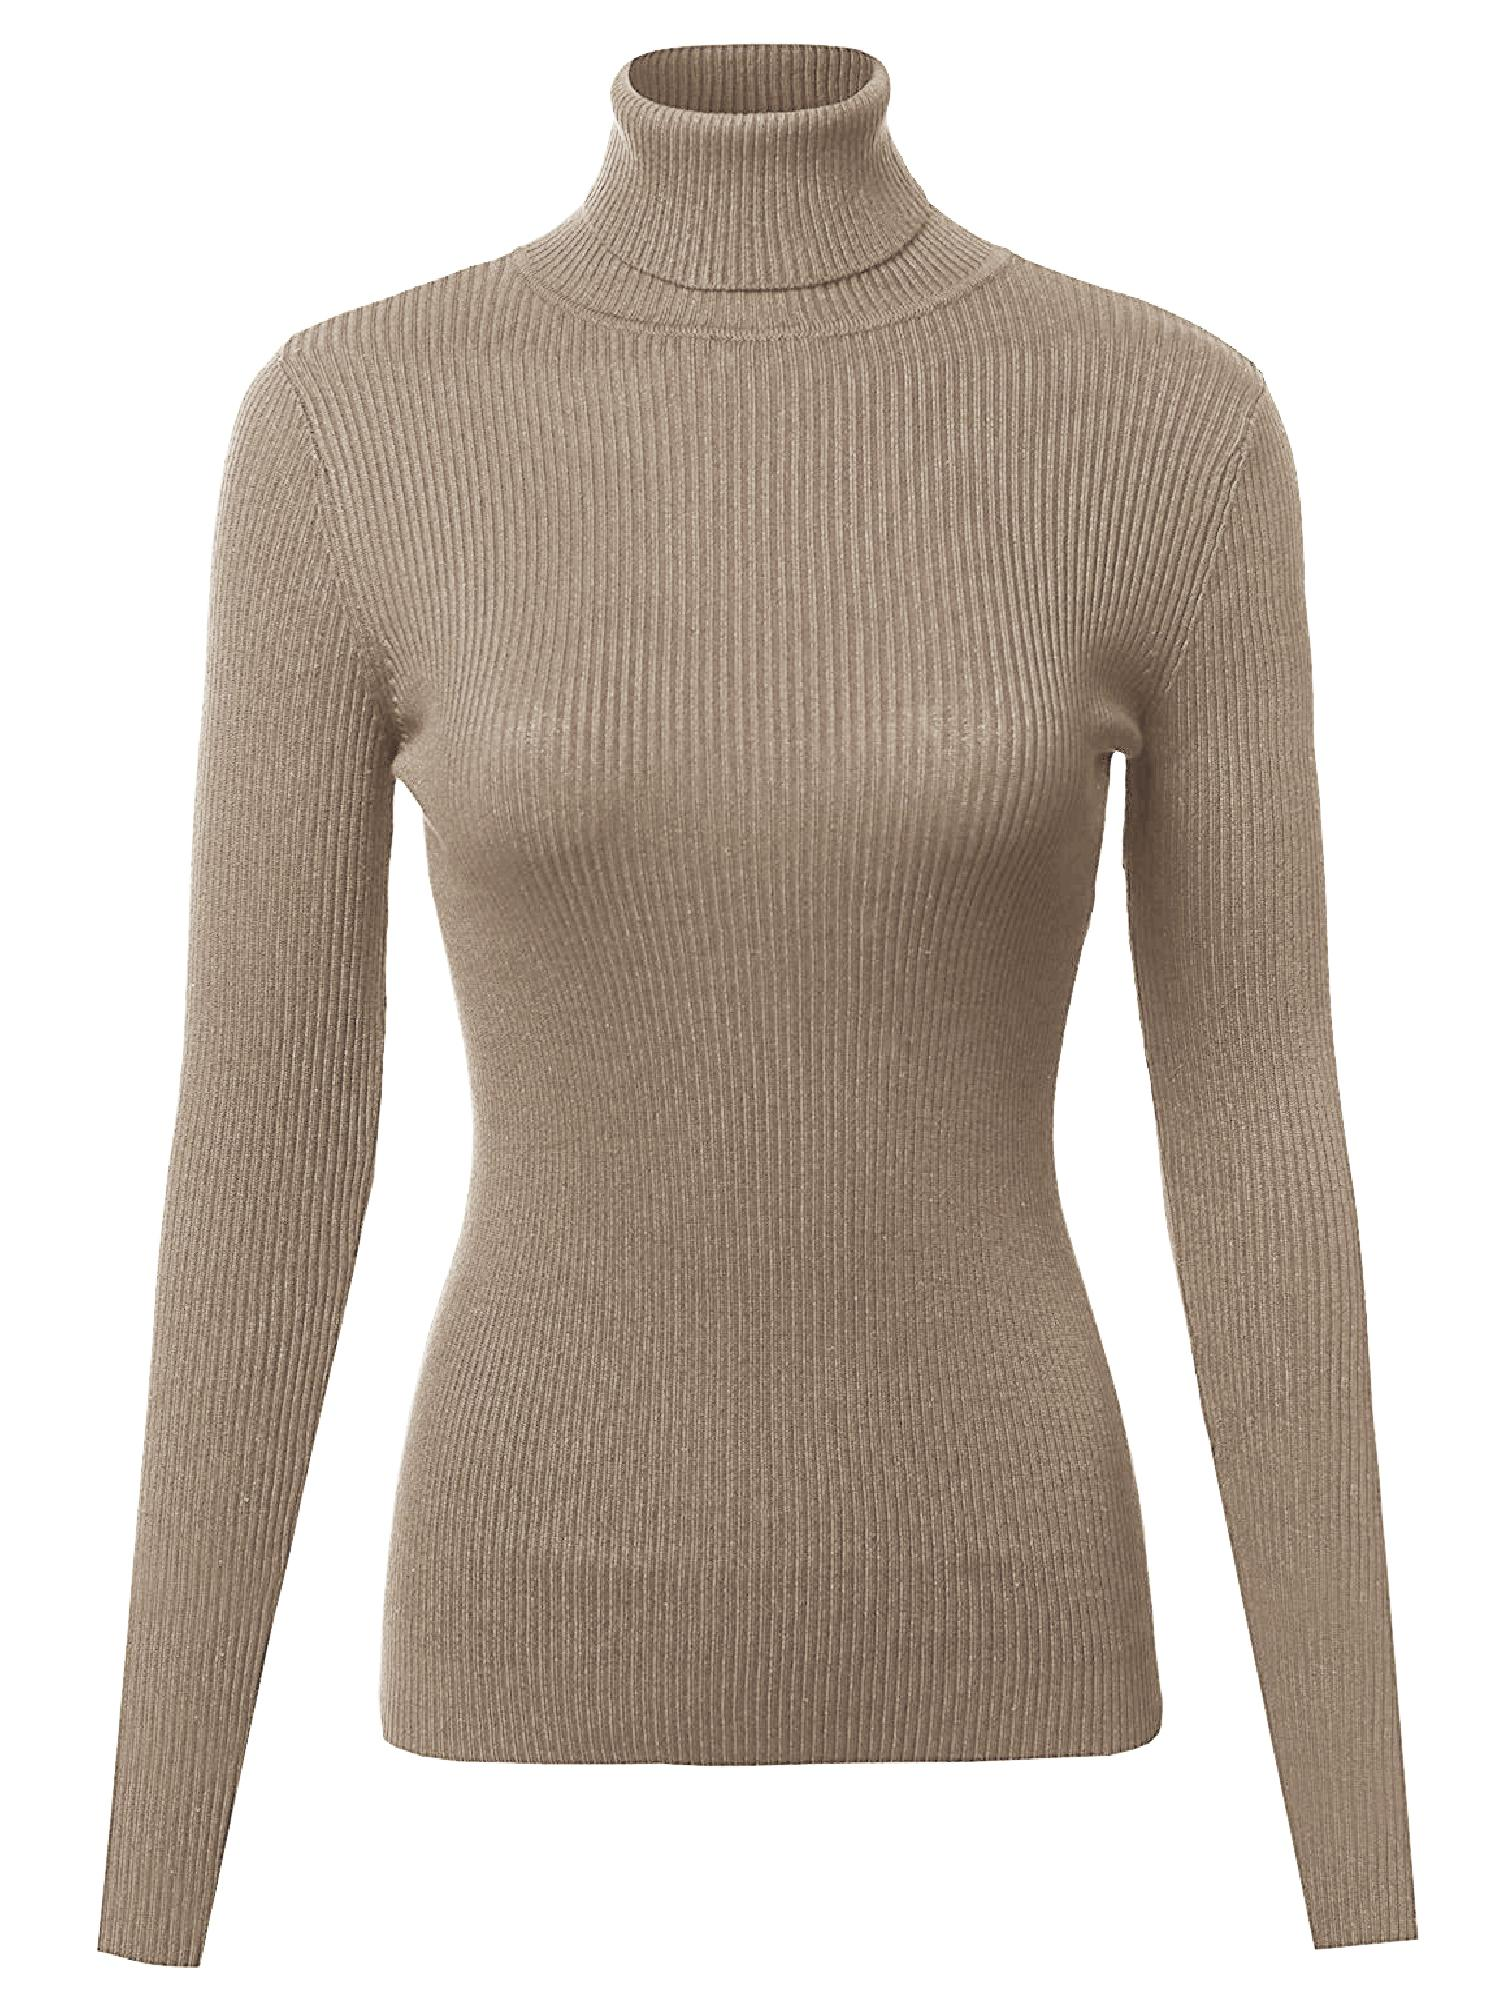 FashionOutfit Women's Basic Slim Fit Lightweight Ribbed Turtleneck Sweater by